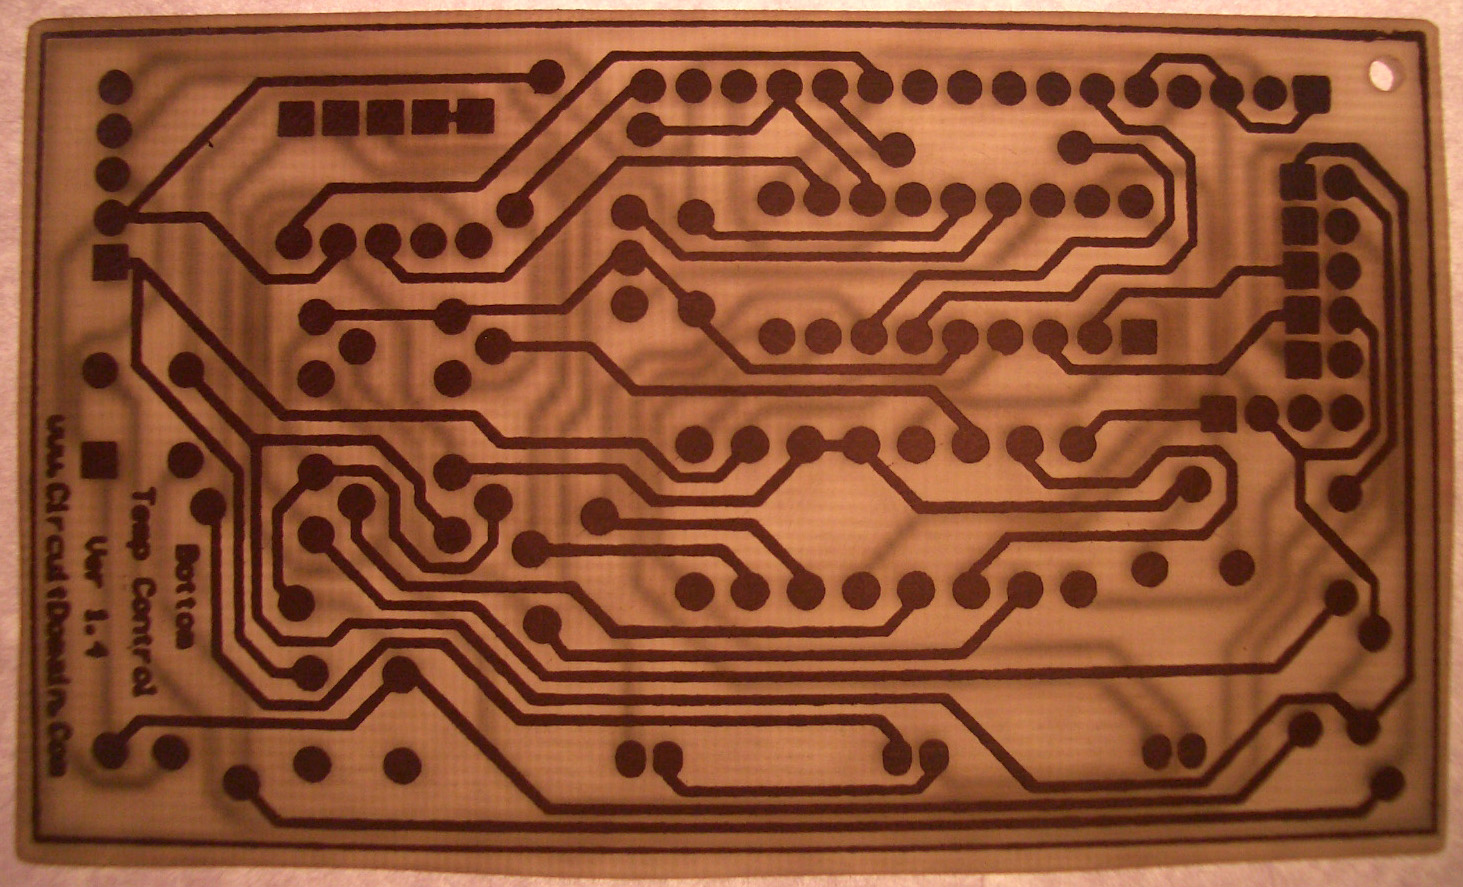 Circuit Domain Downloads Printed Boards In Minutes Pc Etching Prototyping I Use An Tank And A Small Aquarium Pump To The Air Find Using Ferric Chloride Very Good As